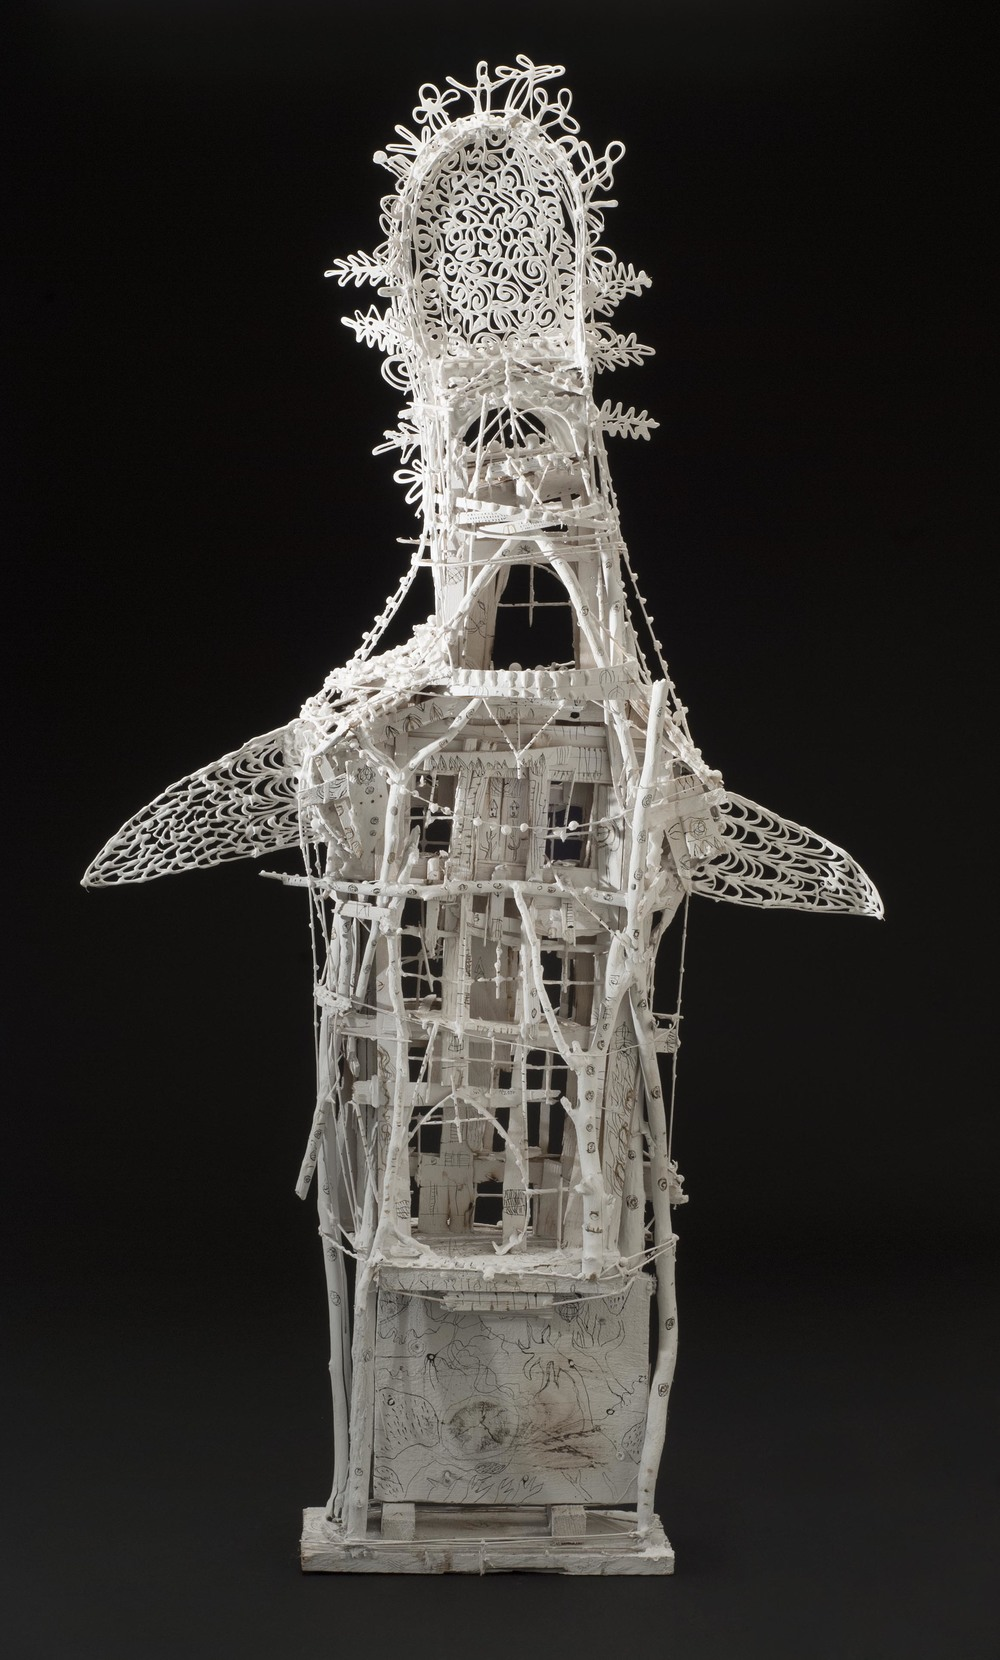 Sylvain Corentin    Bird in a Temple  , 2014 Wood, canvas, wire, yarn, glue, paint 48 x 26 x 5 inches 121.9 x 66 x 12.7 cm SCo 13